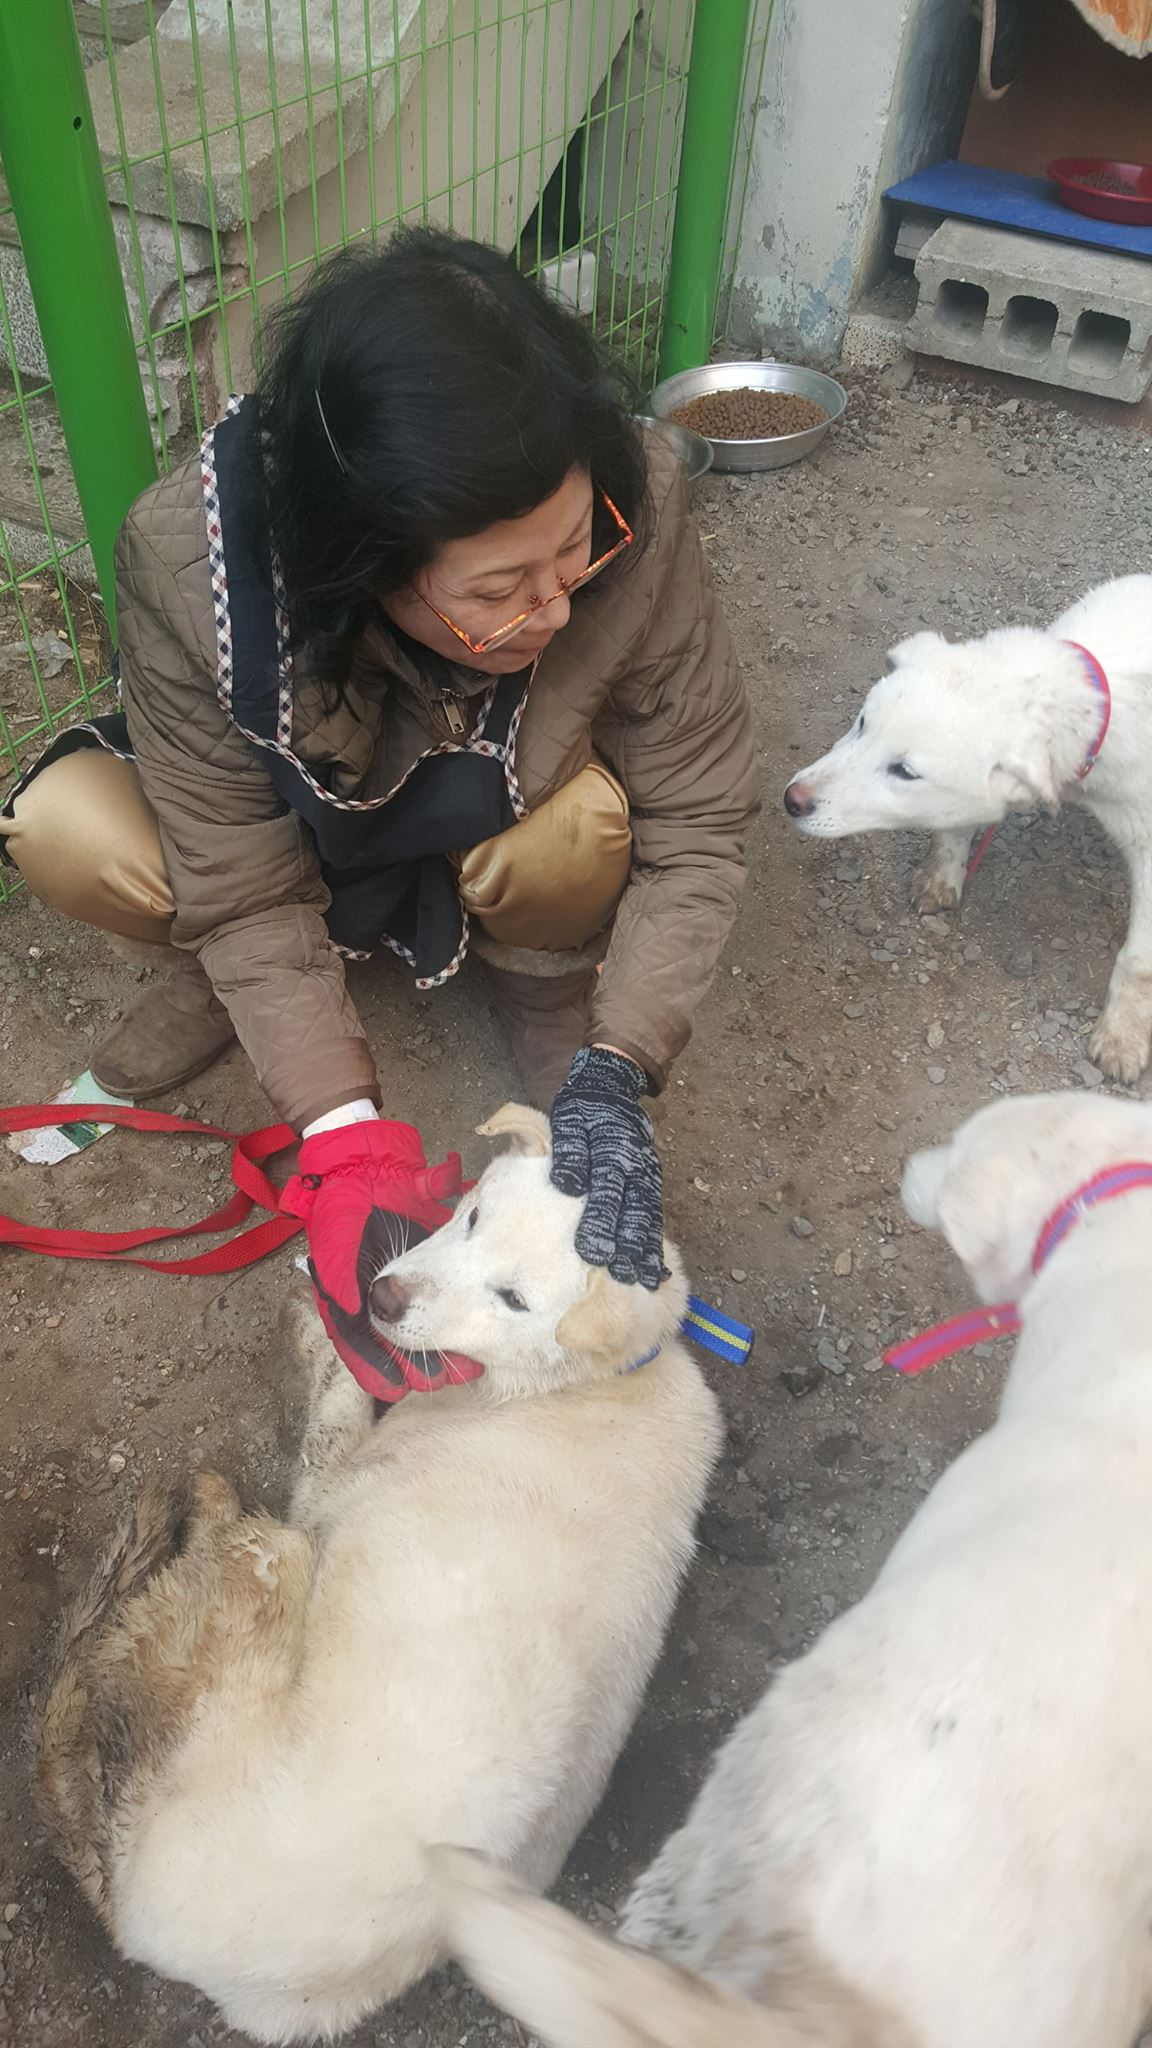 SaveKoreanDogs.org needs home for the rescued dogs